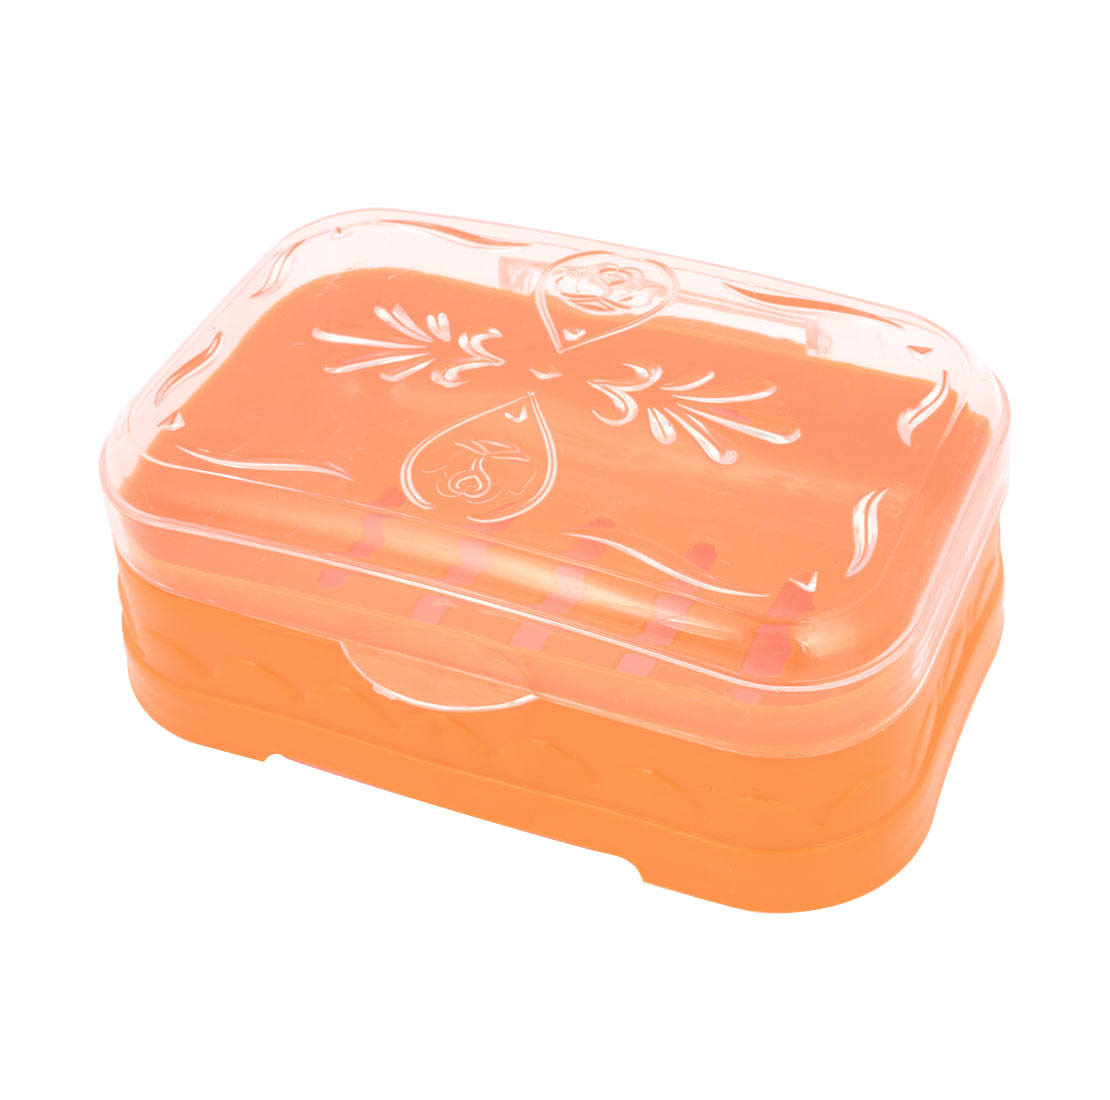 Bathroom Perforating Bottom Plastic Soap Box Case Holder Orange Clear